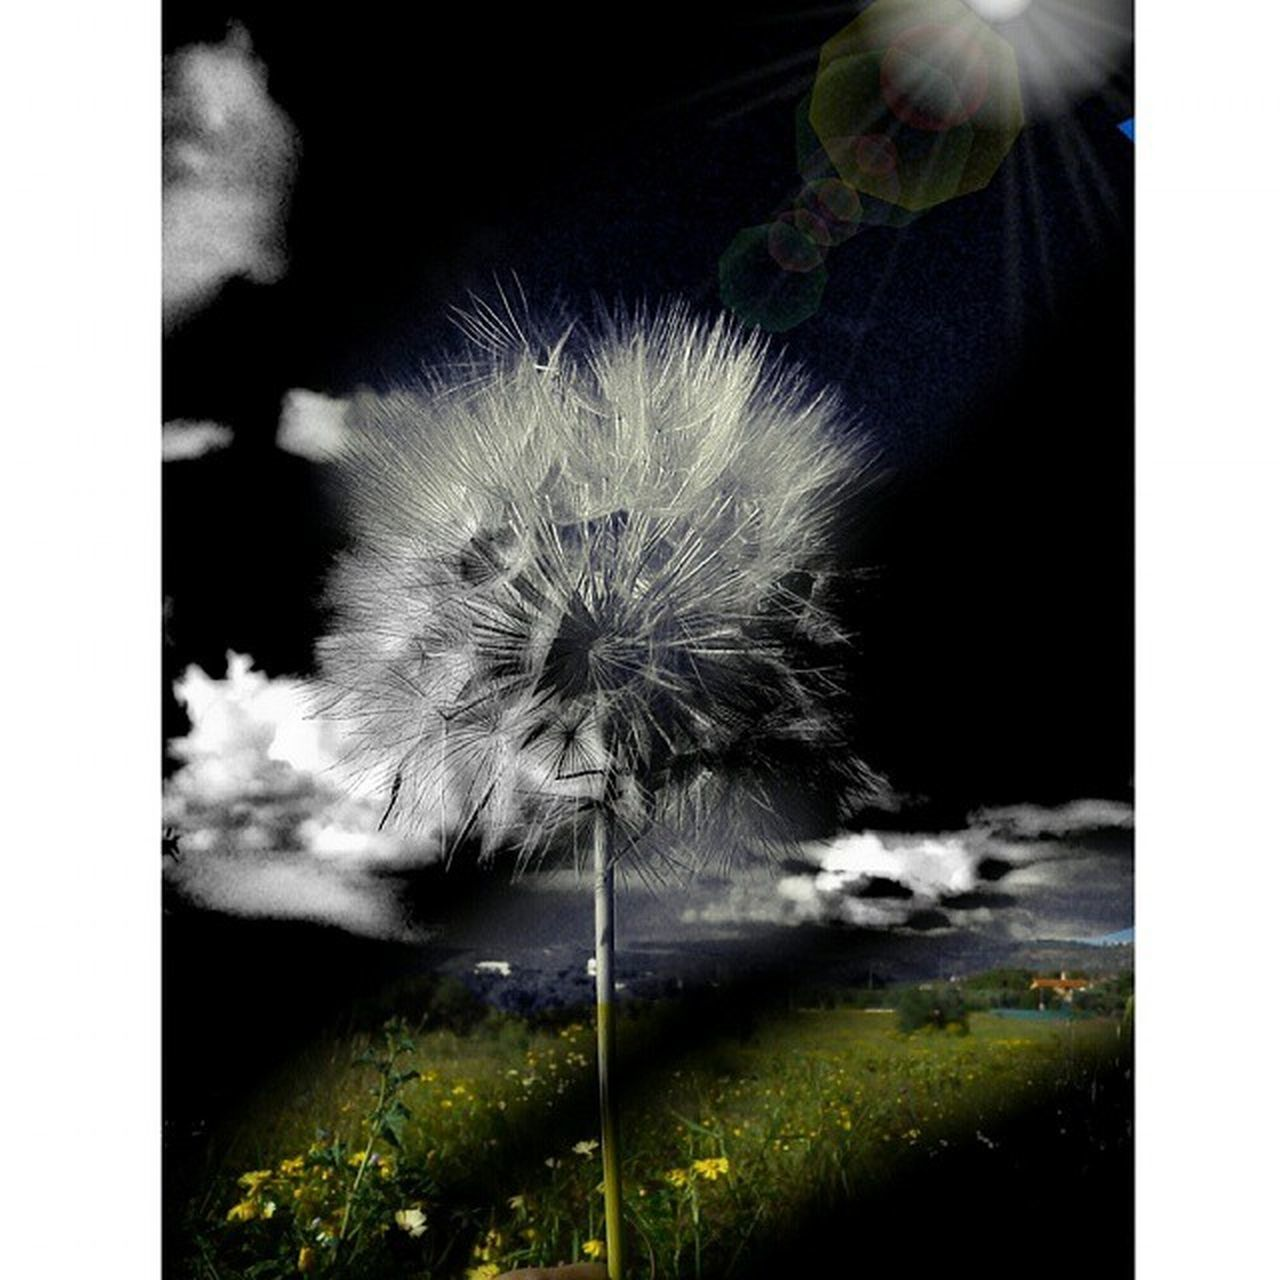 flower, dandelion, nature, growth, fragility, no people, plant, flower head, beauty in nature, outdoors, close-up, day, freshness